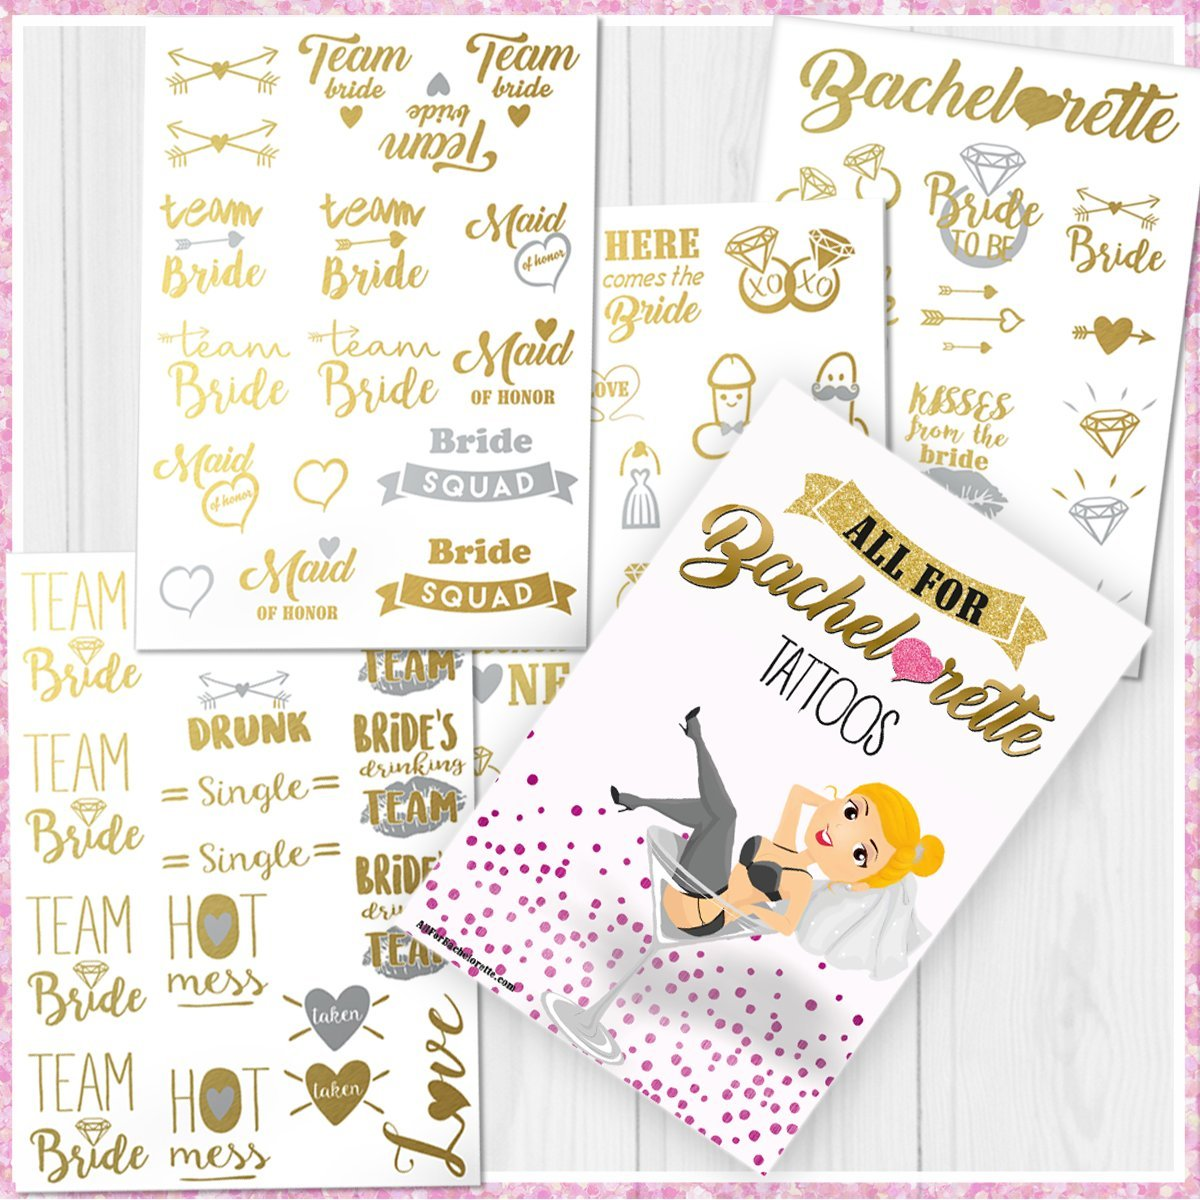 Bachelorette Party Tattoos - Gold & Silver Metallic Flash Temporary Tattoos, Mixed Set of 66 Bachelorette/Hen Party Favors by AllForBachelorette (Image #3)